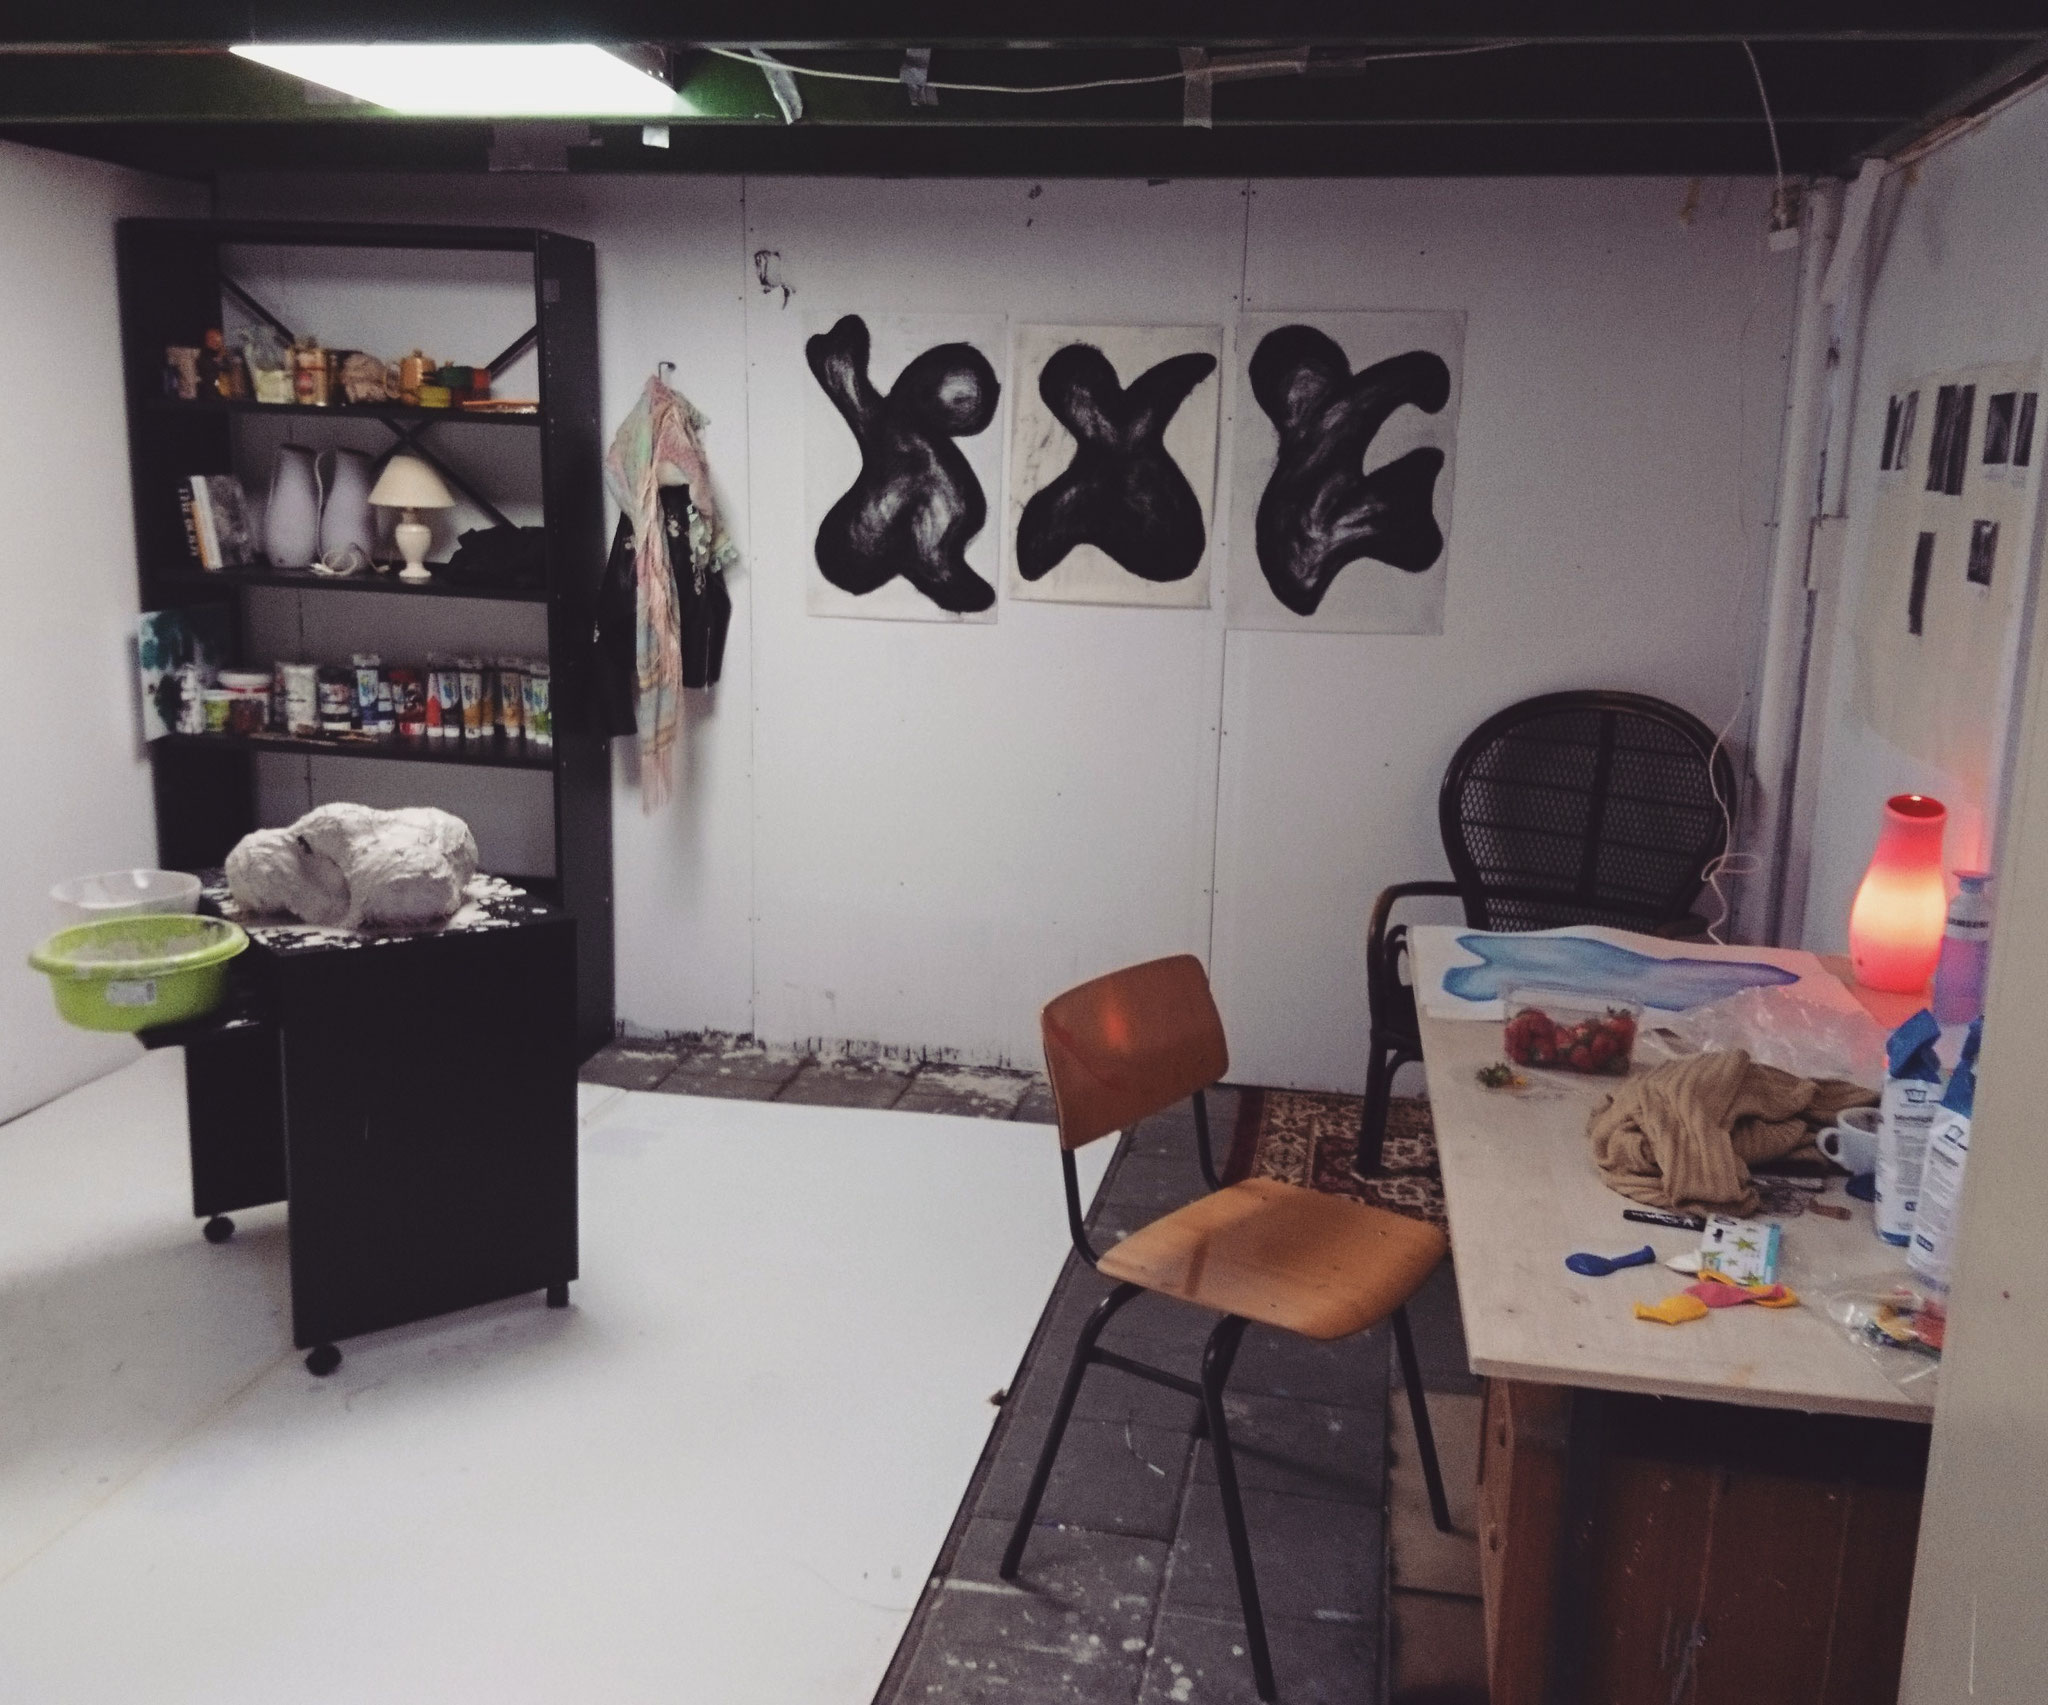 Studio at the start of my final study year